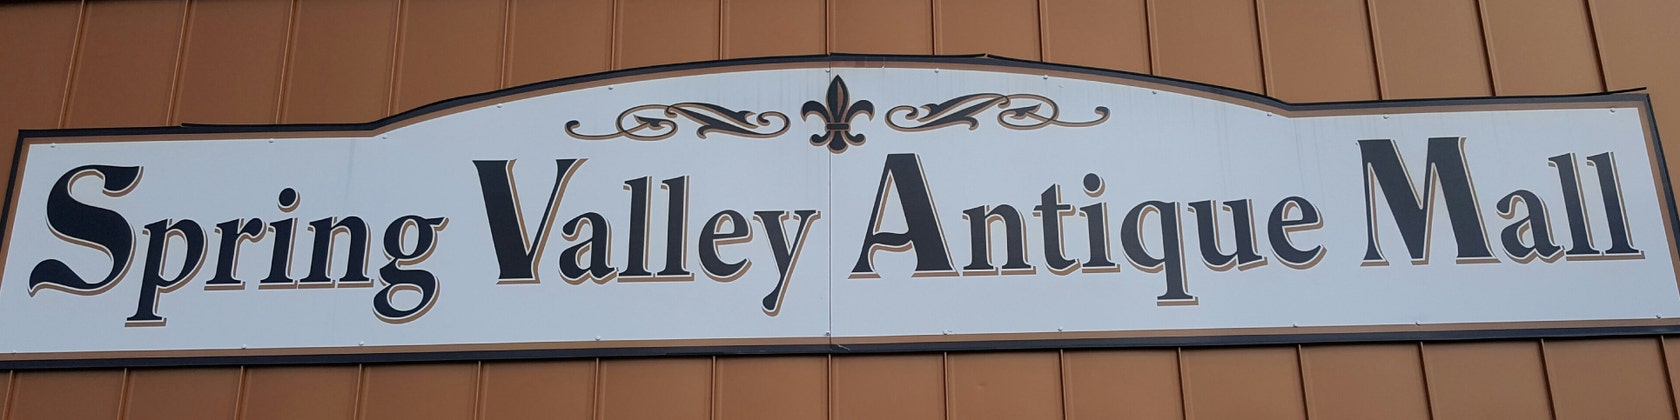 Spring Valley Antiques